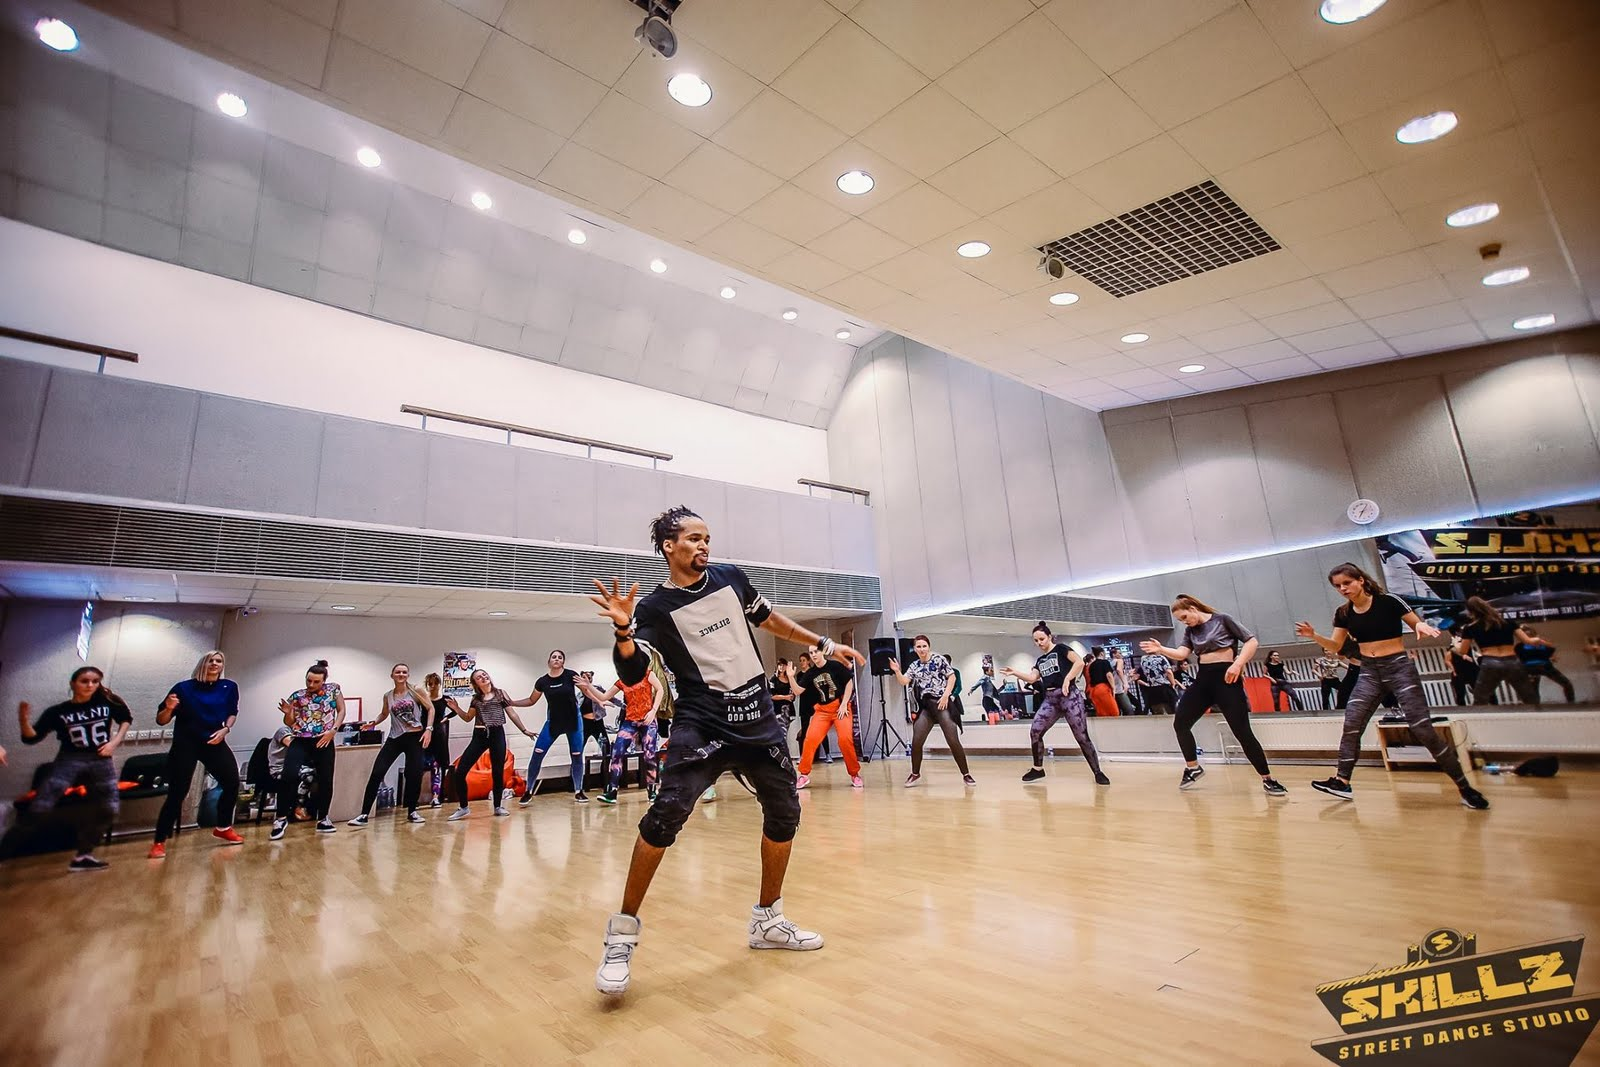 Dancehall workshop with Jiggy (France) - 50.jpg